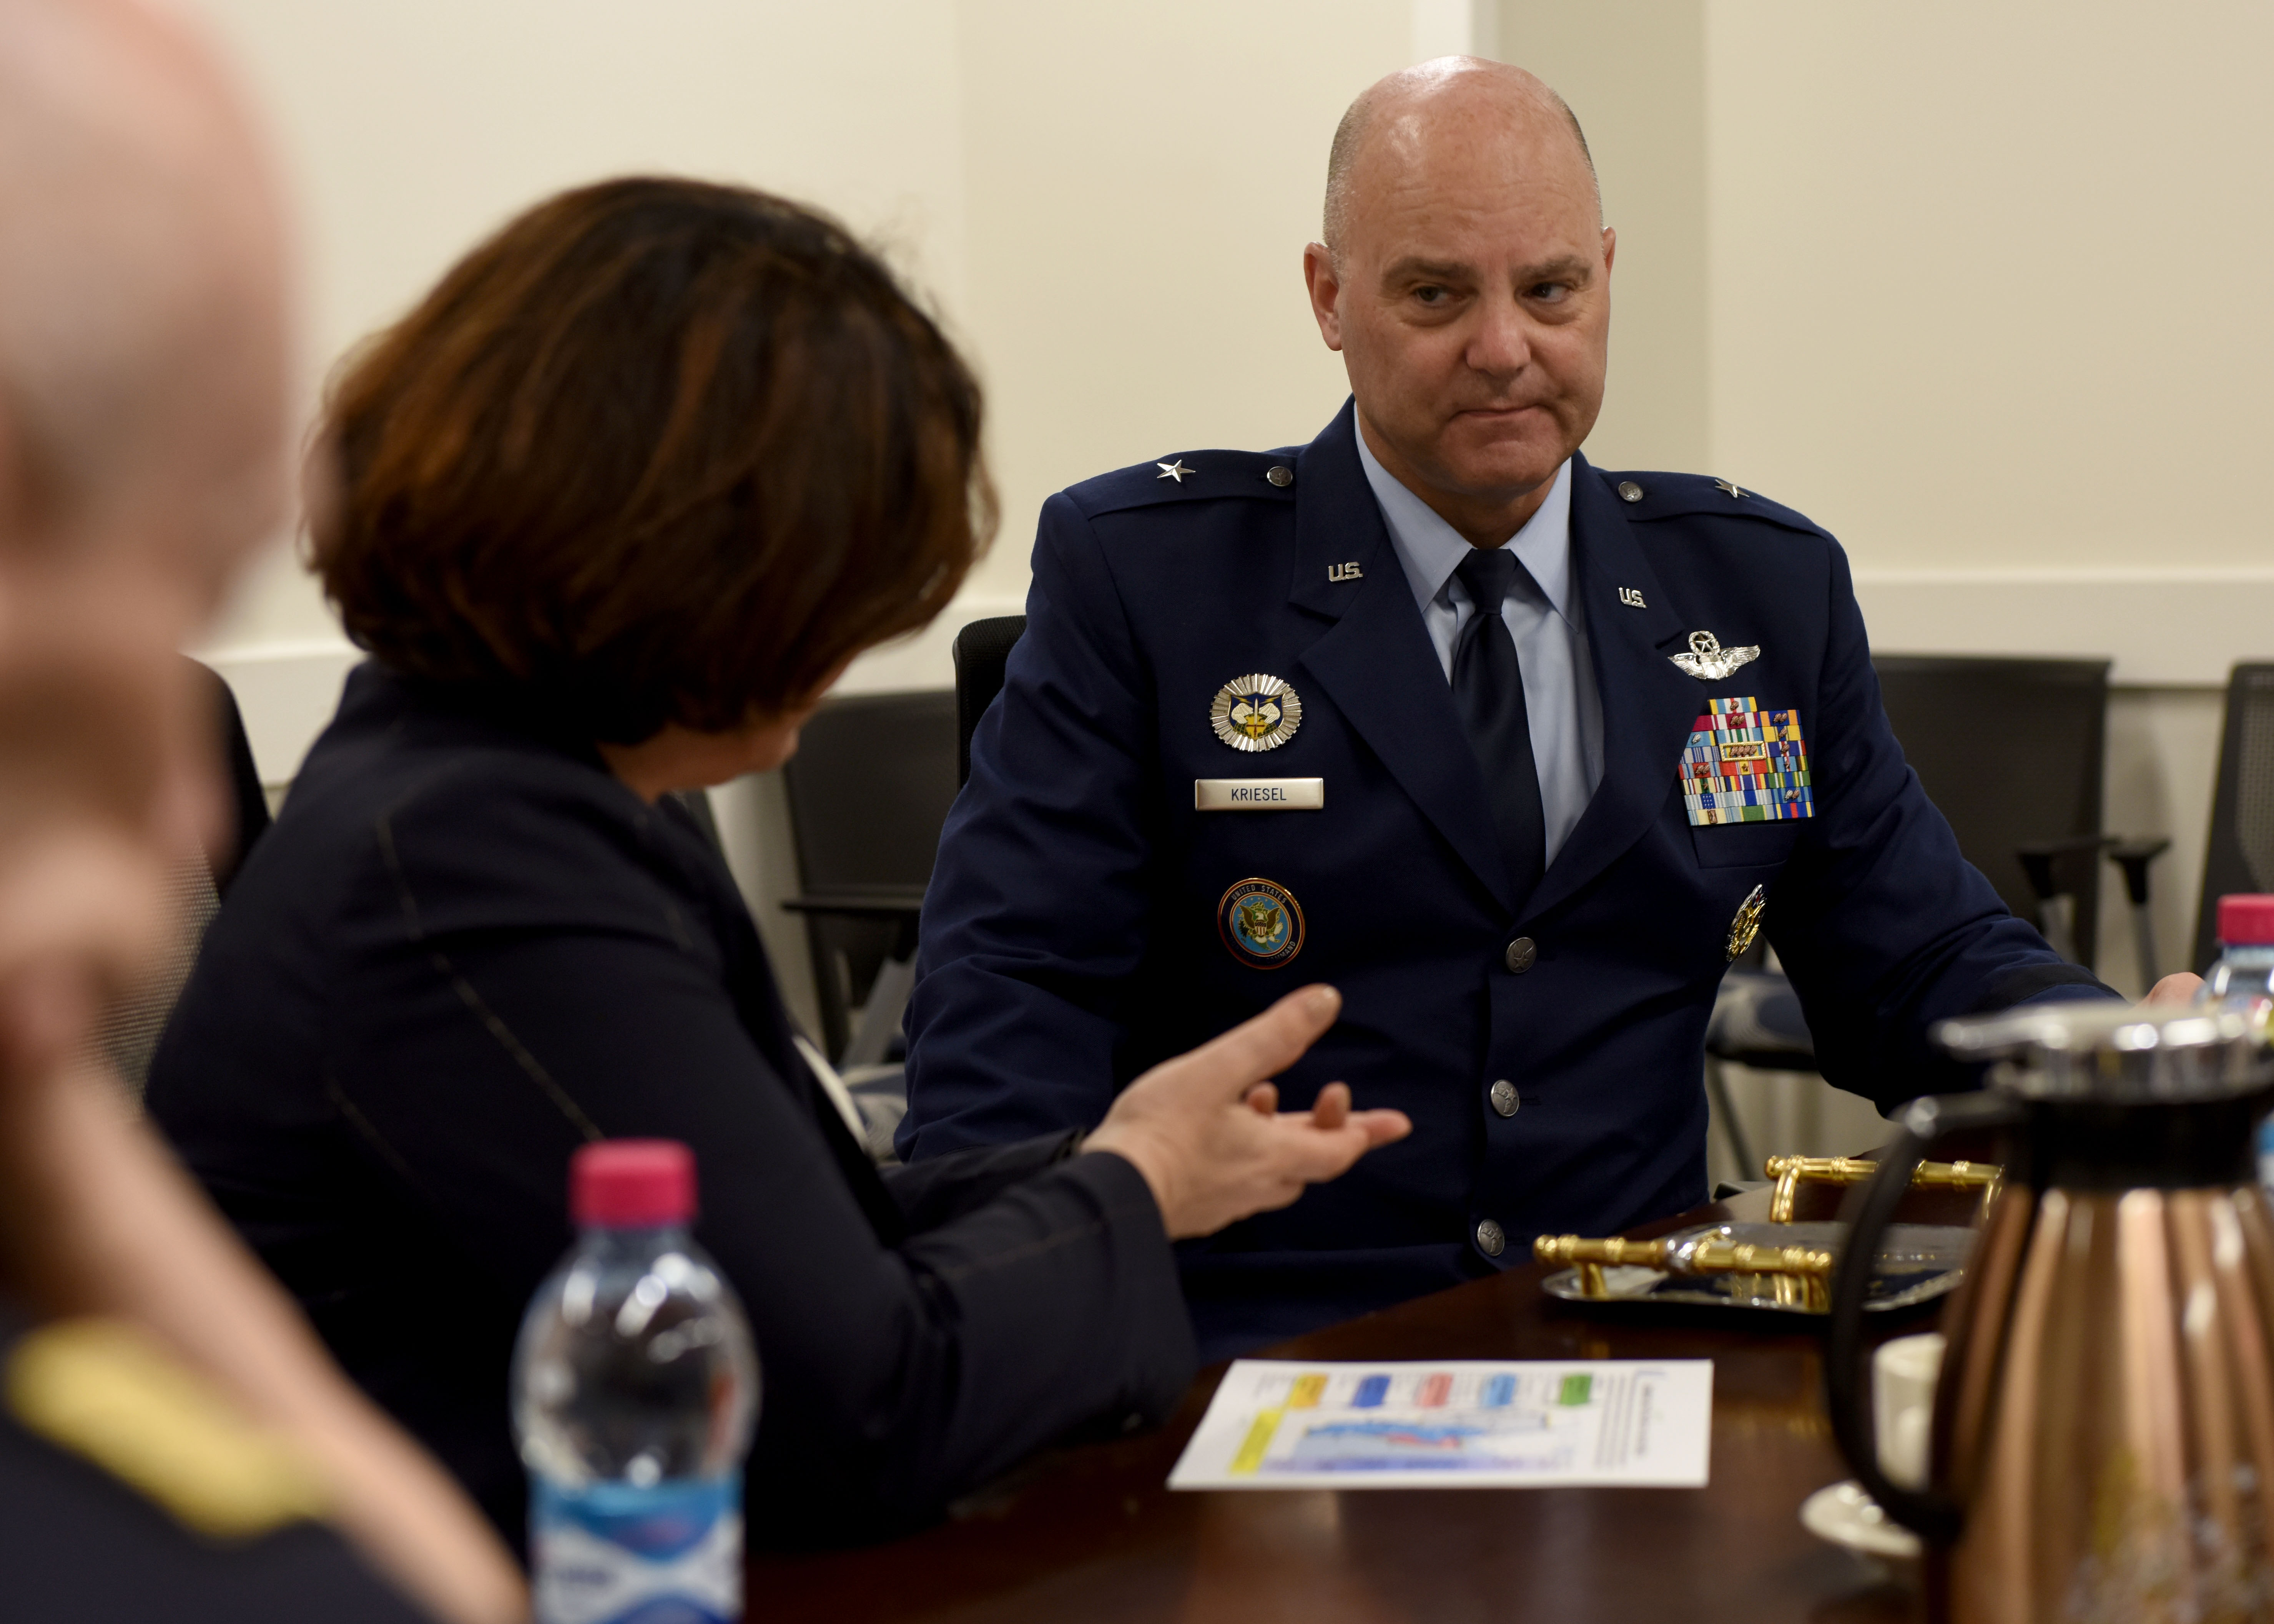 U.S. Air Force Brig. Gen. James R. Kriesel, right, deputy commanding general of Combined Joint Task Force-Horn of Africa (CJTF-HOA), listens to Elisabetta Trenta, Italian Minister of Defence, during her visit to Camp Lemonnier, Djibouti, April 9, 2019. Trenta visited CJTF-HOA to gain insight on how U.S. forces operate in the combined joint operations area and to foster relations. (U.S. Air Force Photo by Staff Sgt. Franklin R. Ramos)